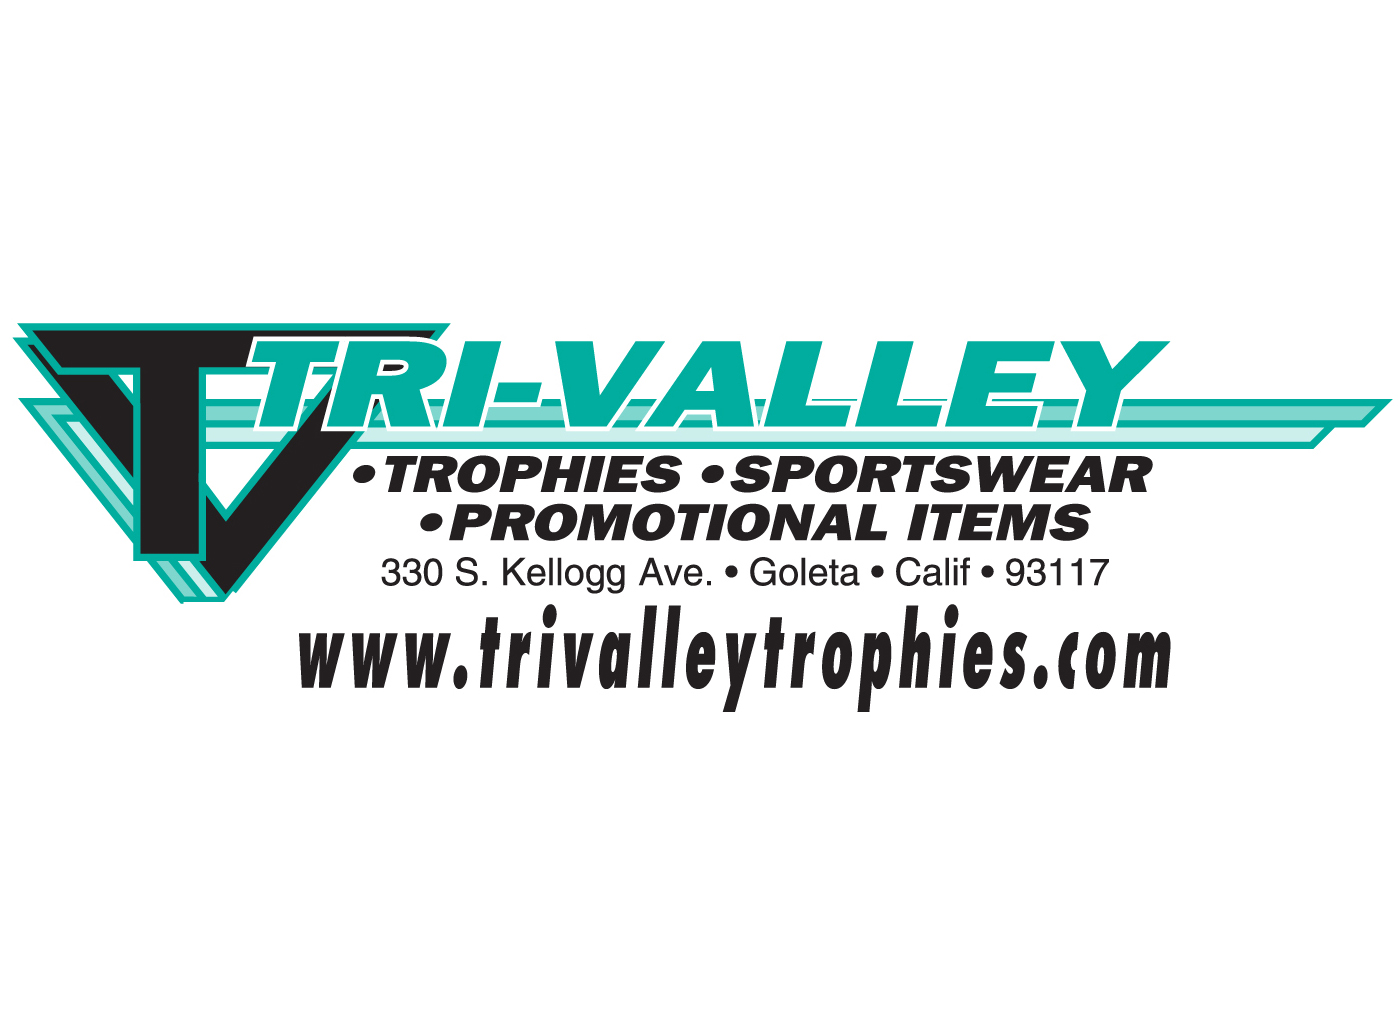 Tri-Valley Trophies & Sportswear